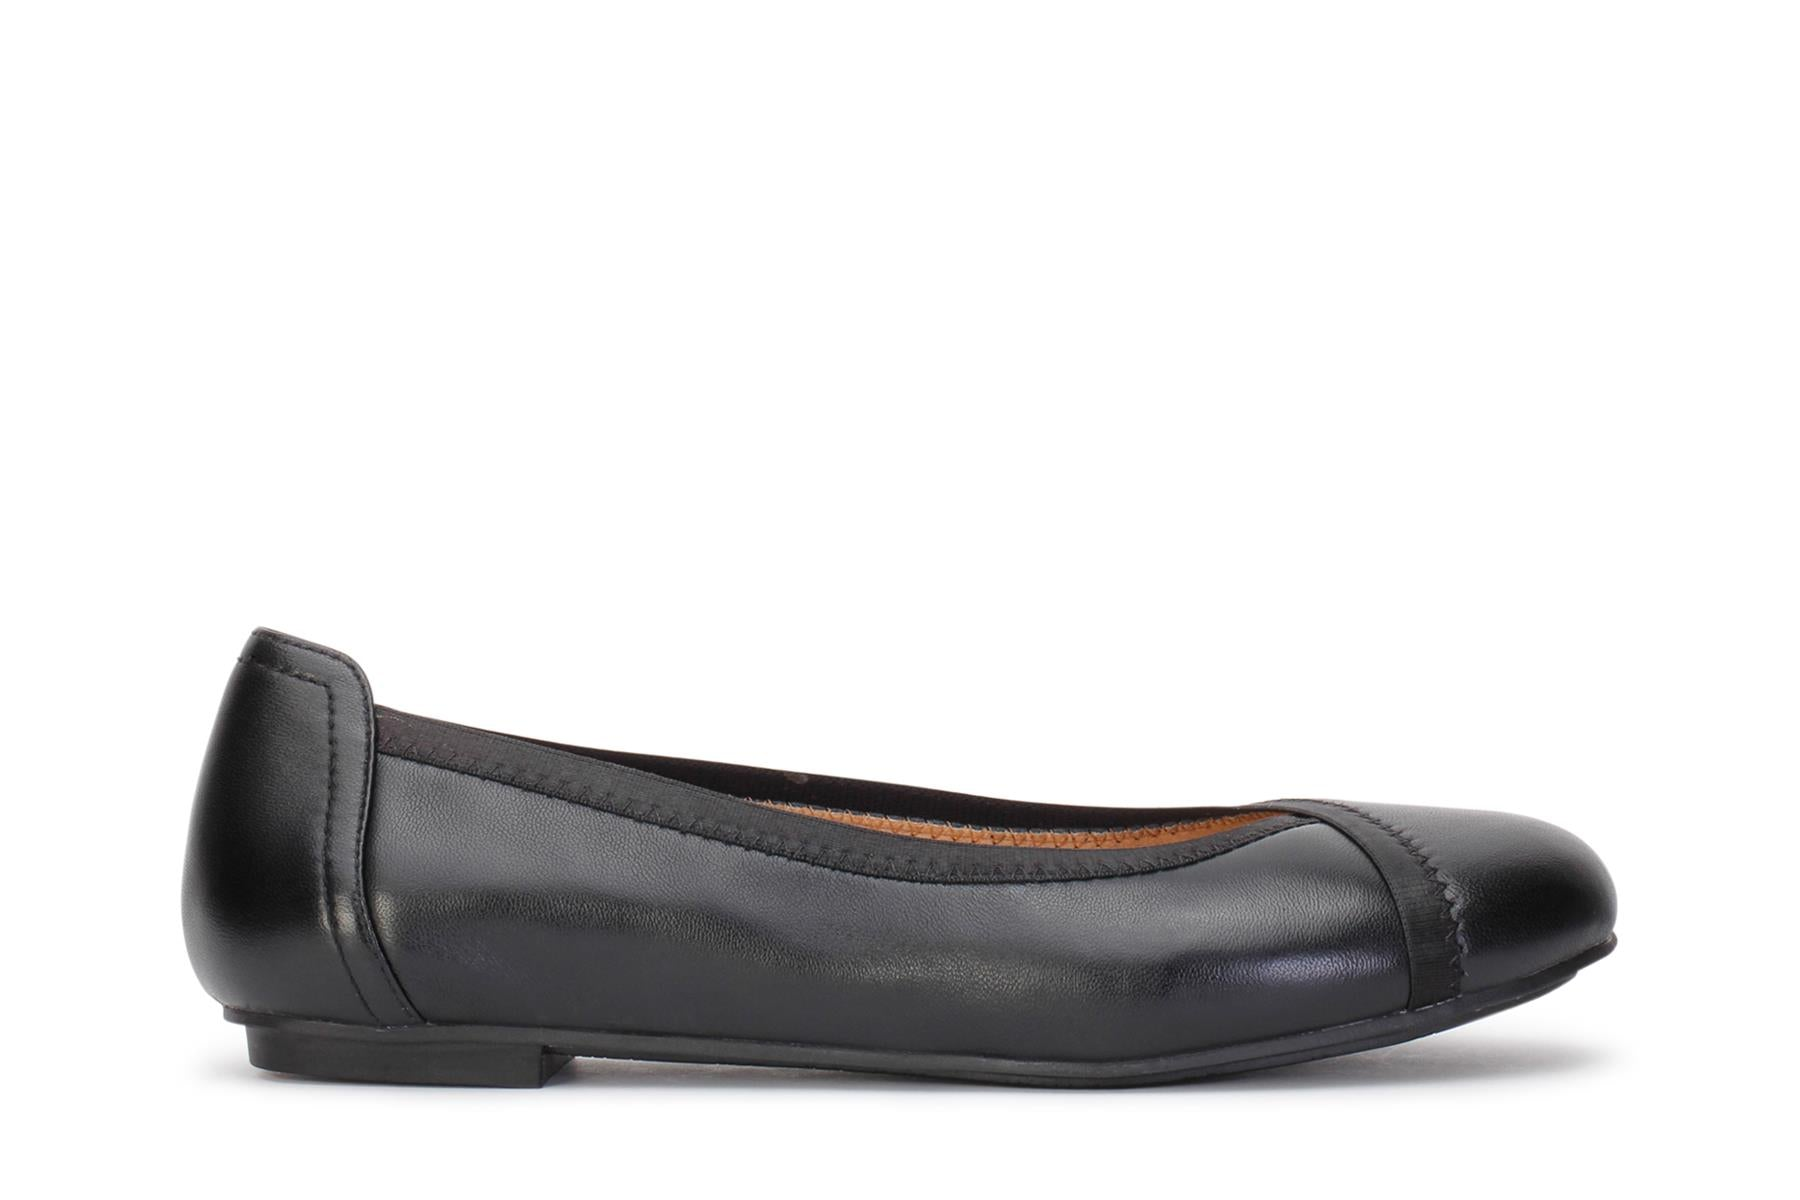 vionic-womens-ballet-flat-shoes-corall-black-10010058-main